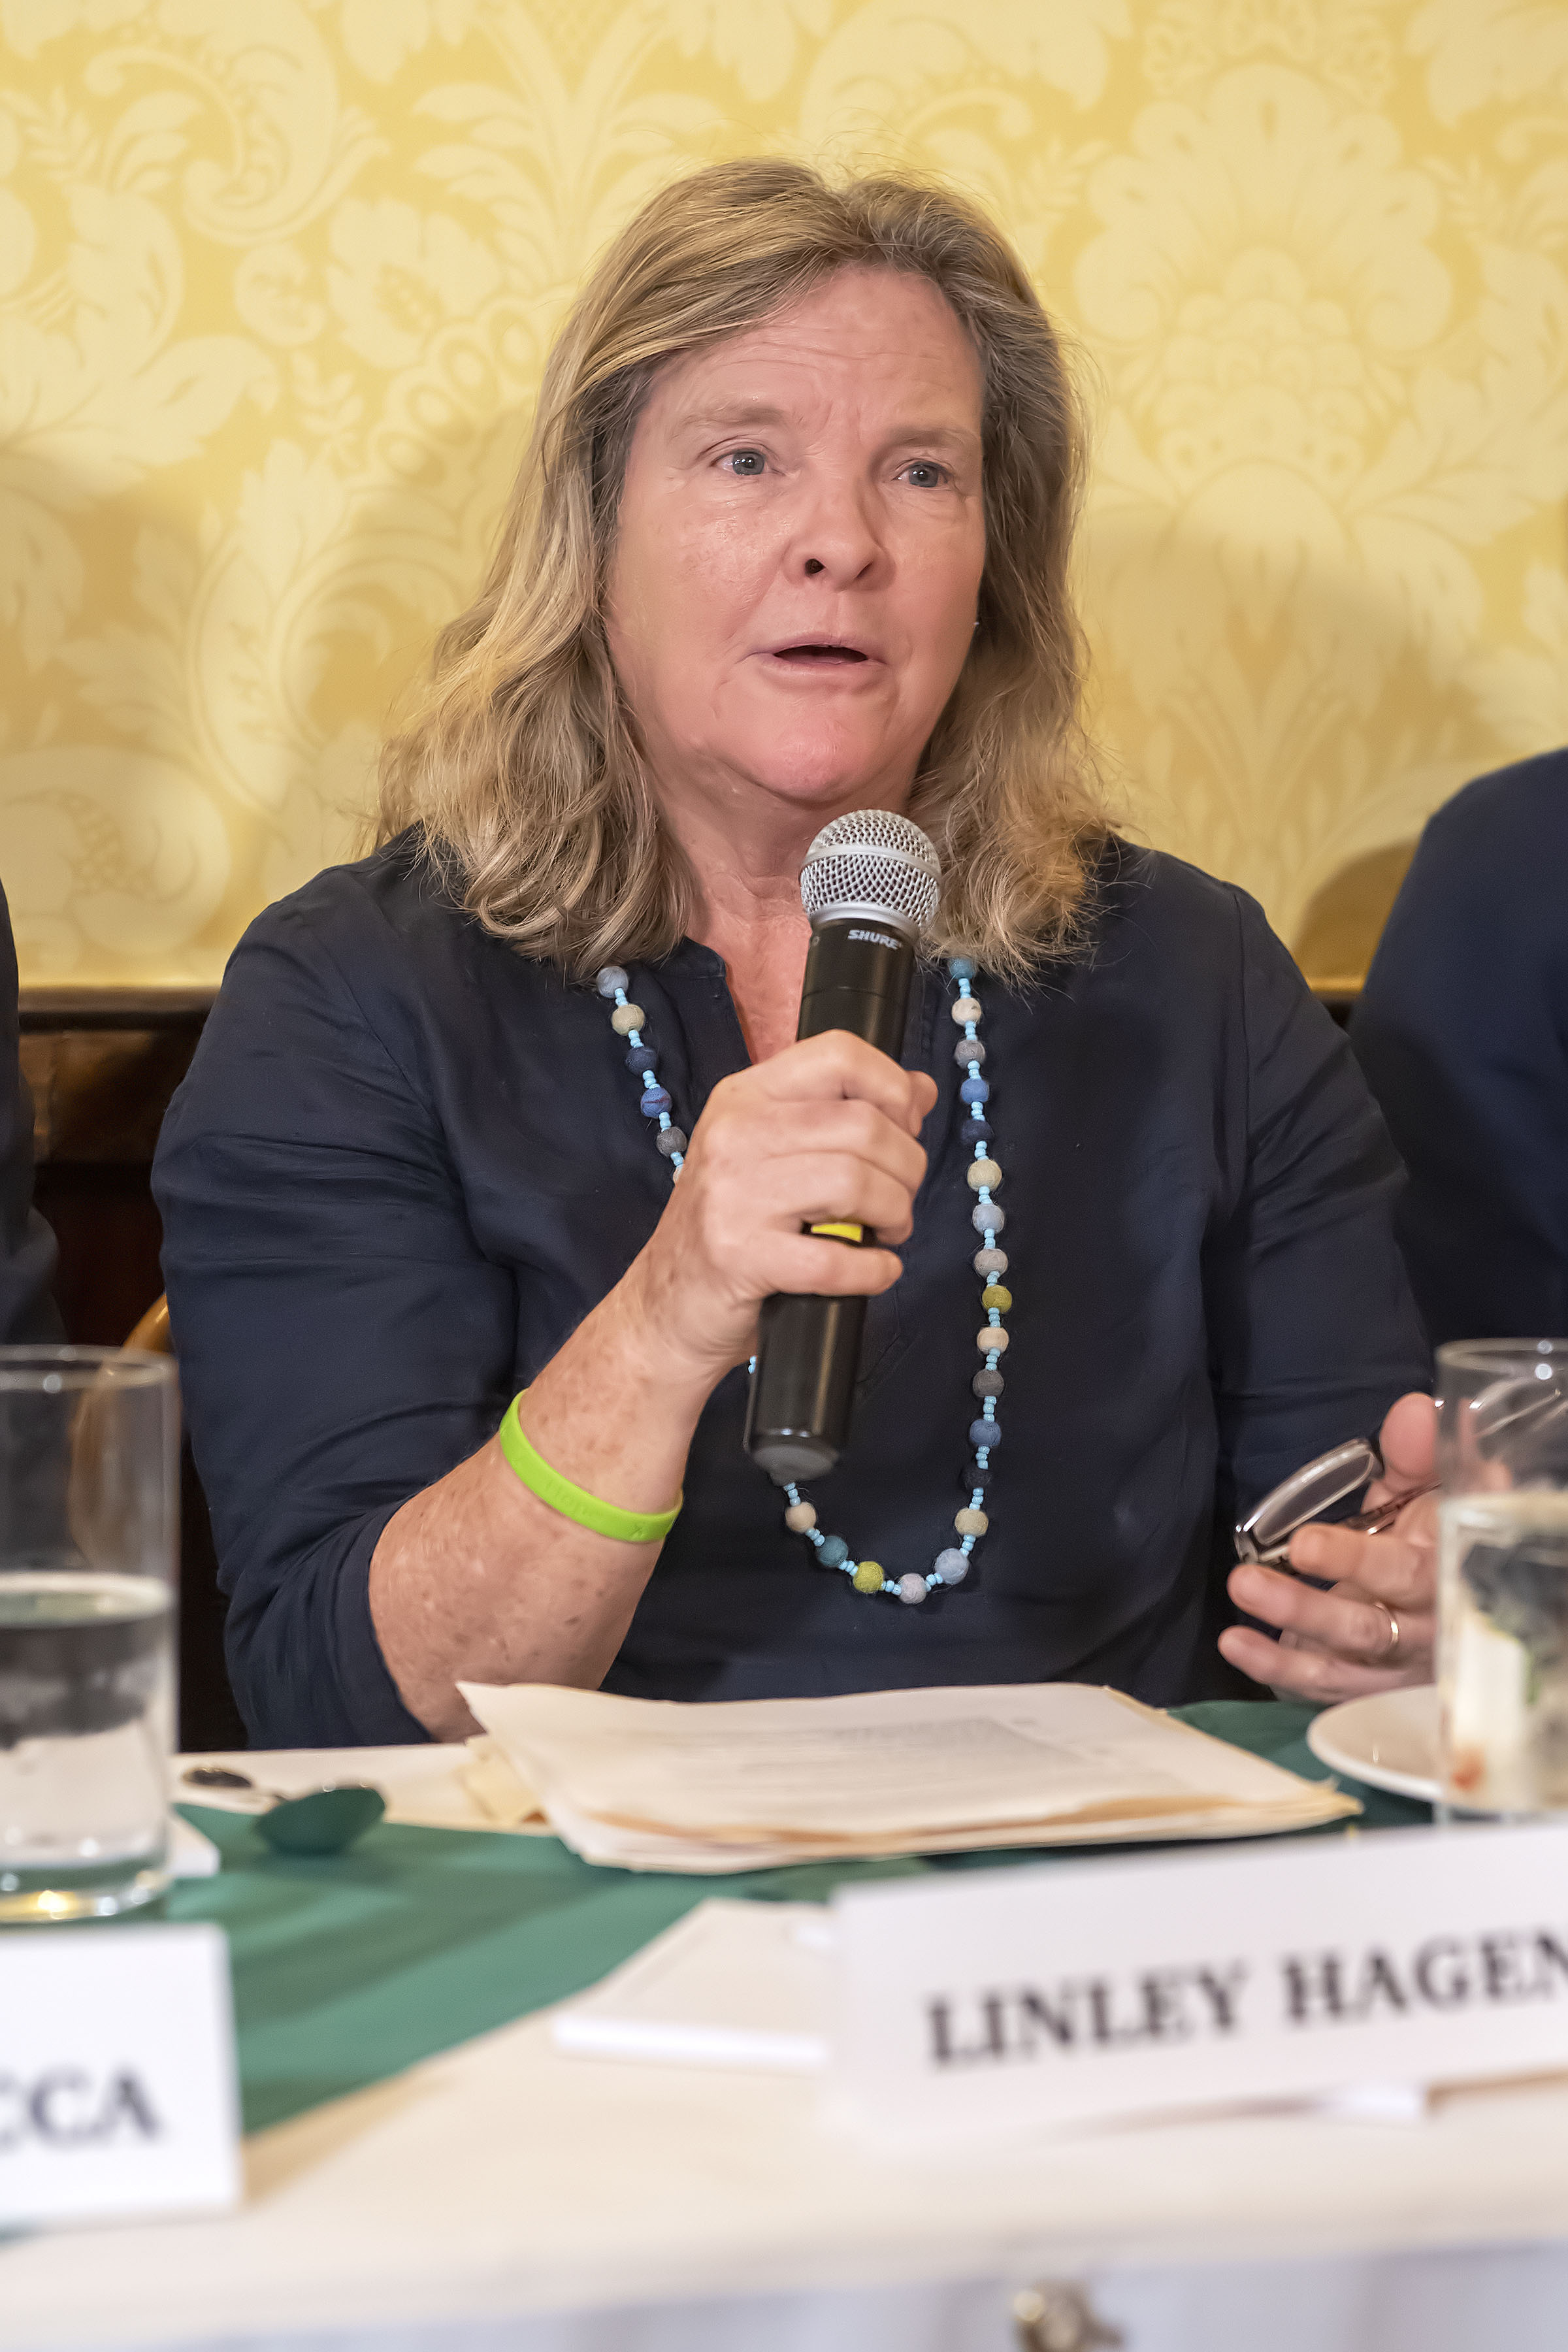 Panelist Linley Hagen speaks during the Express Sessions - Sag Harbor Public Spaces event at the American Hotel in Sag Harbor on Friday.   MICHAEL HELLER